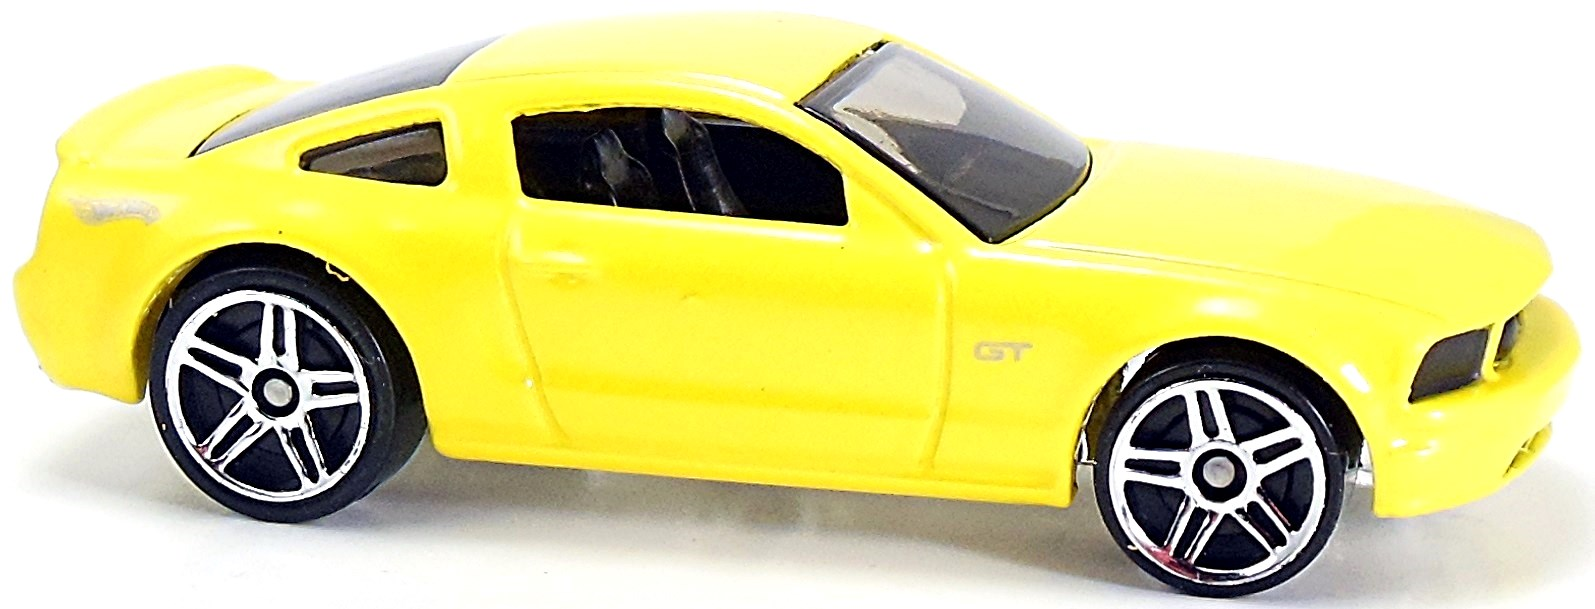 C mf yellow chrome base black int tinted windows black grille silver gt on front fender hot wheels logo on rear fenders pr5 mal ford motor